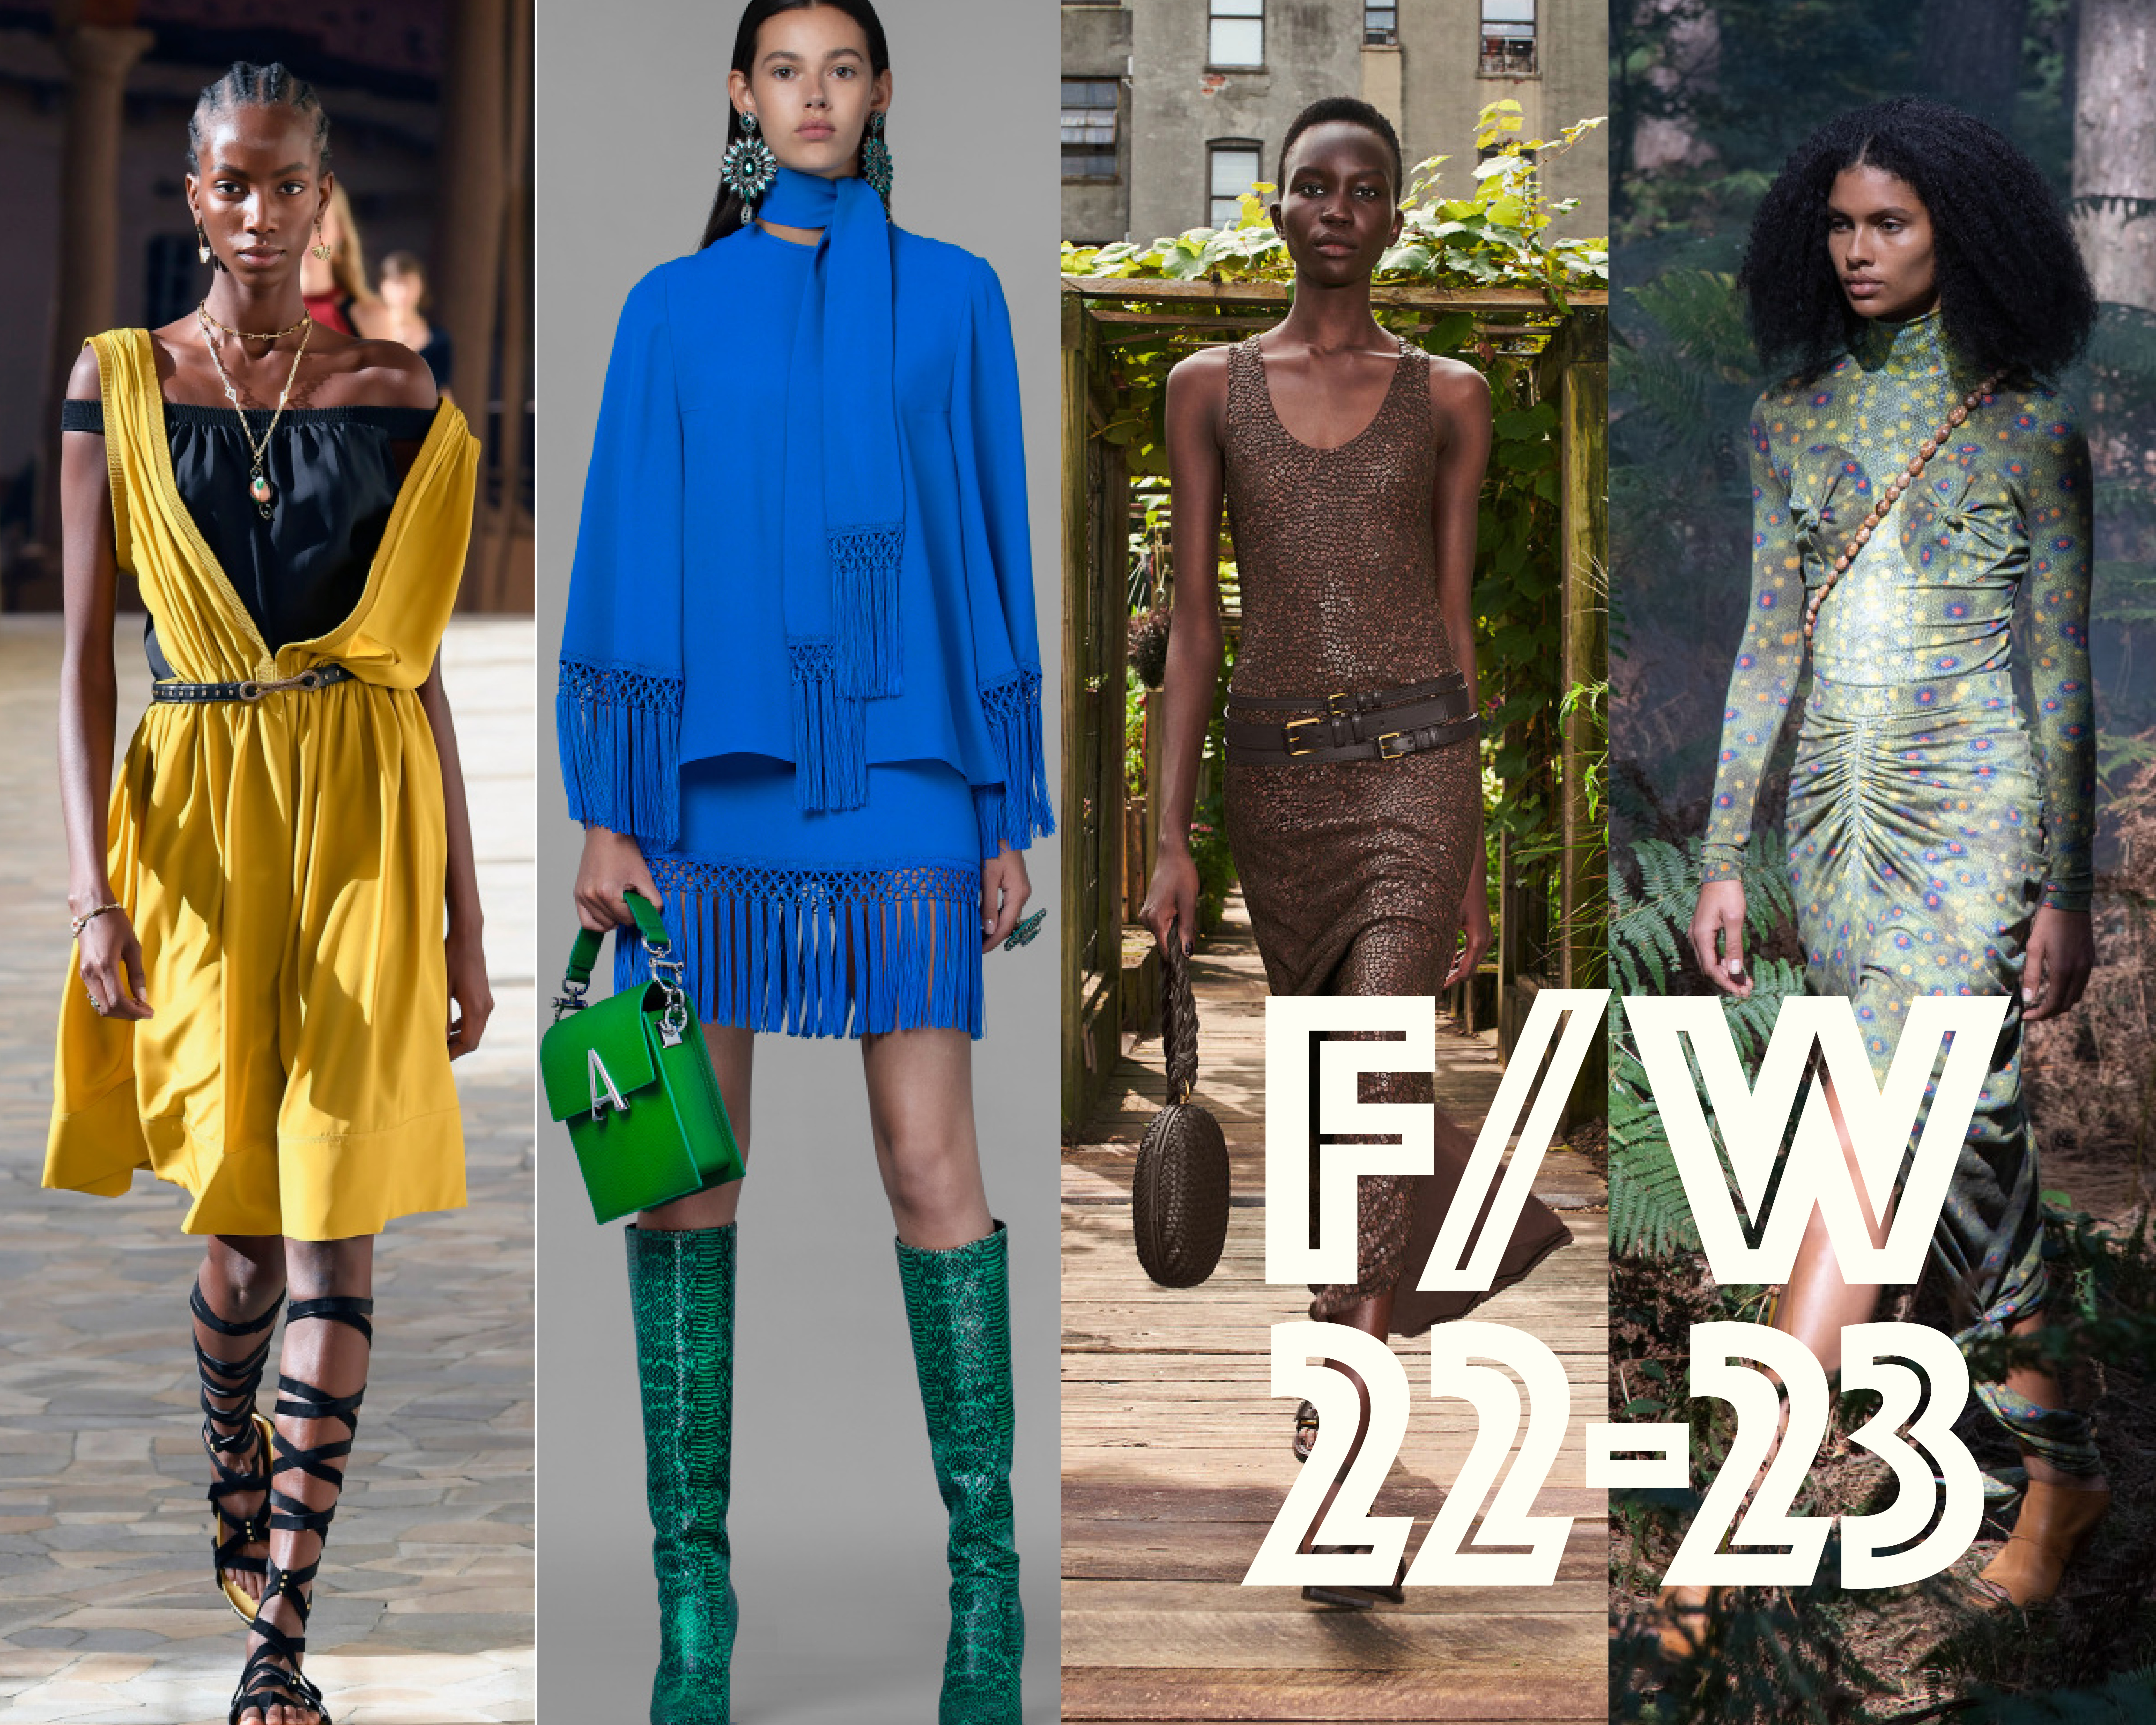 Soothing yet conservative evergreen colors make up global trend forecasting agency WGSN's forecast for Fall/Winter 22-23.